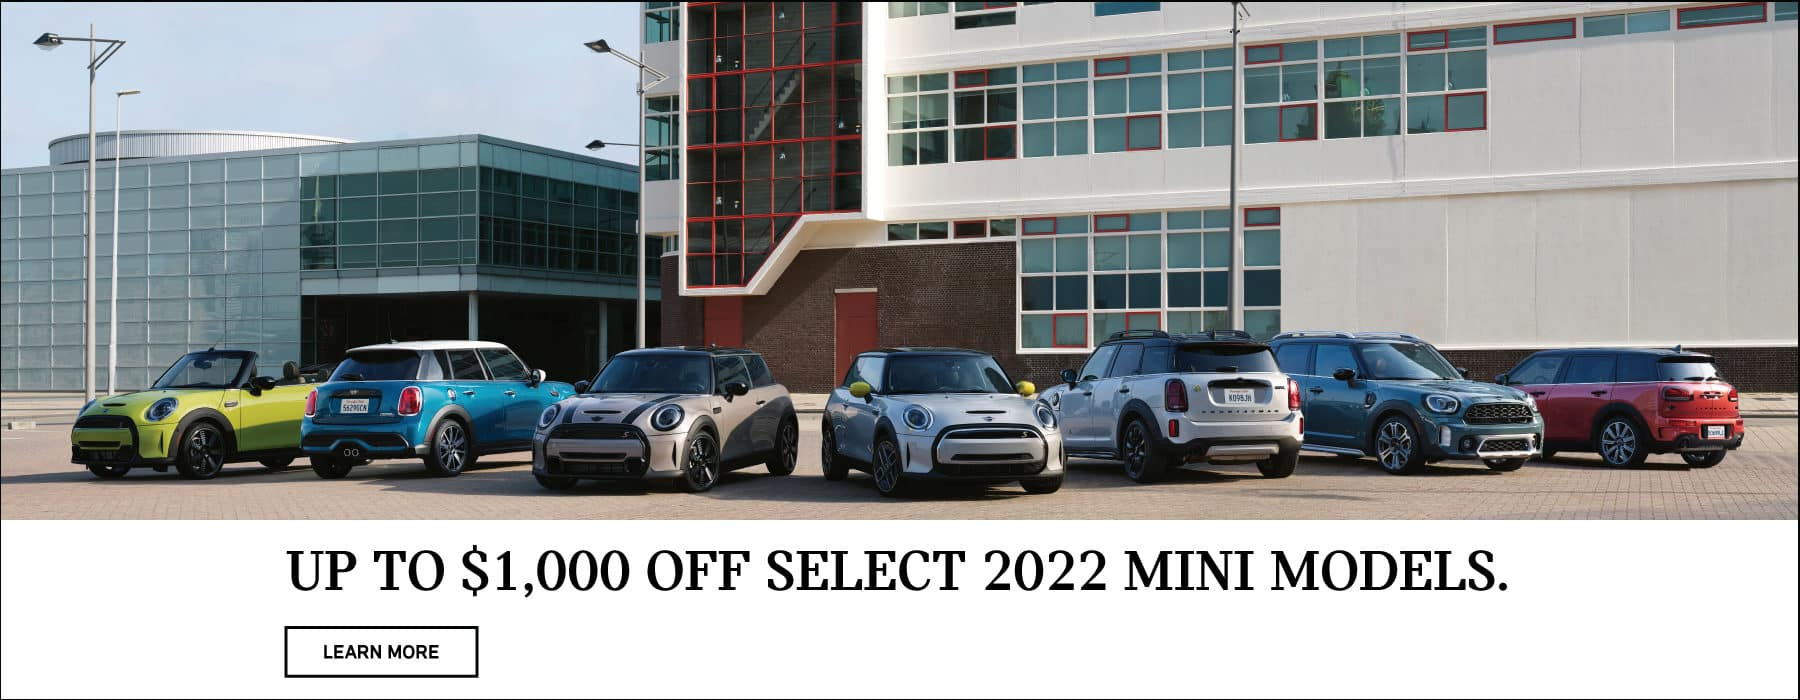 UP TO $1,000 OFF SELECT 2022 MINI MODELS. CLICK TO LEARN MORE